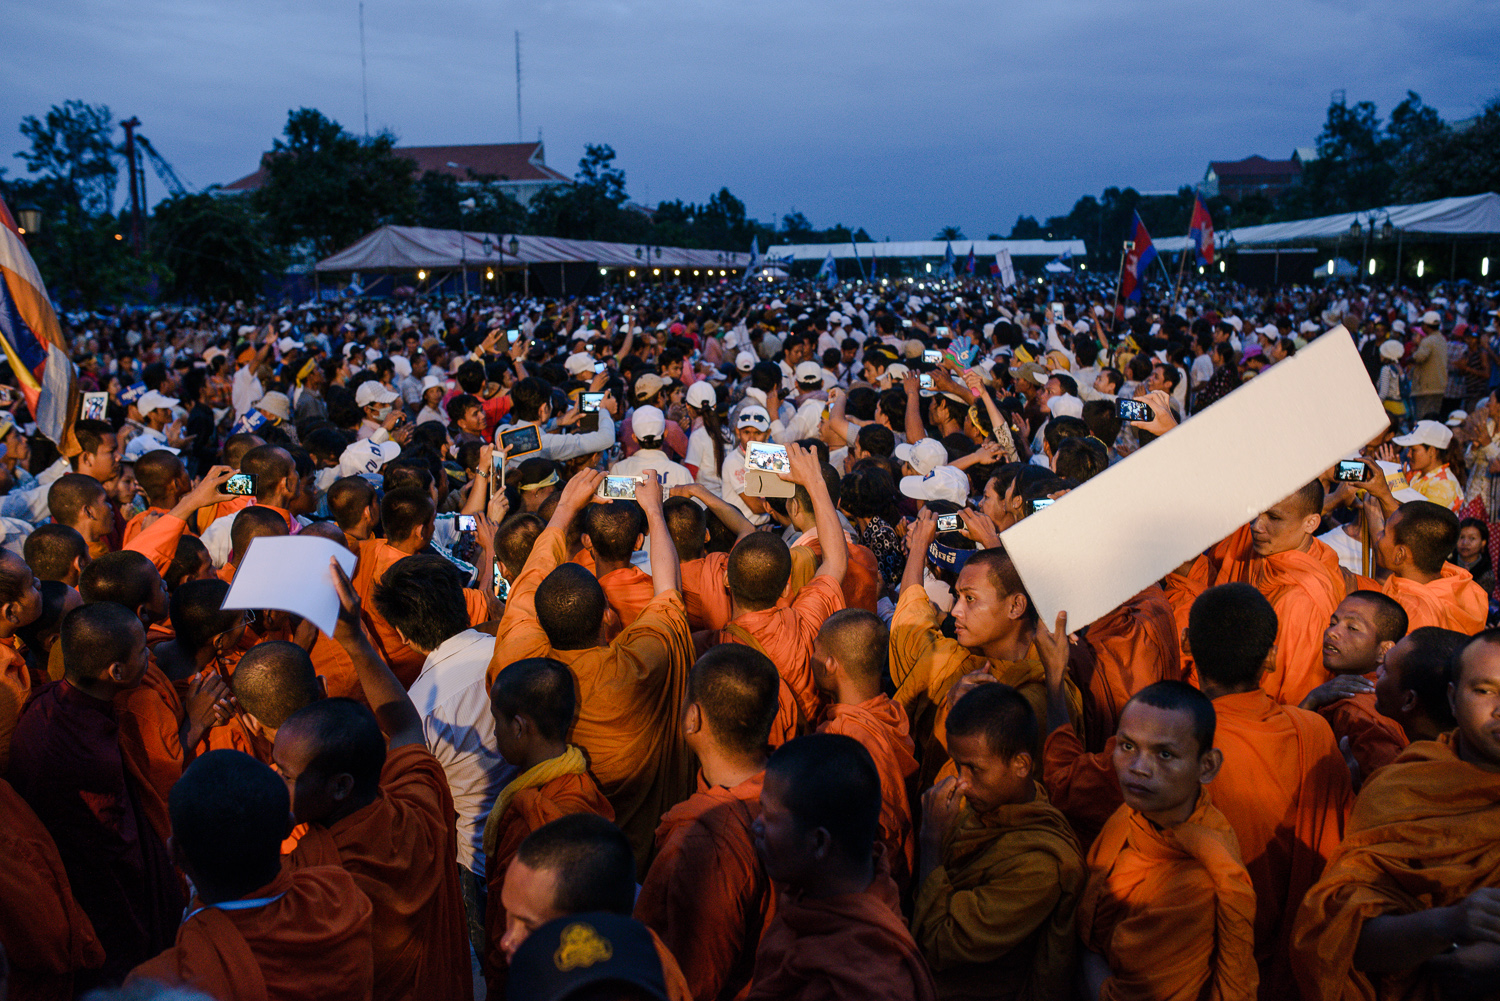 CNRP supporters await the return of Sam Rainsy at Freedom Park,